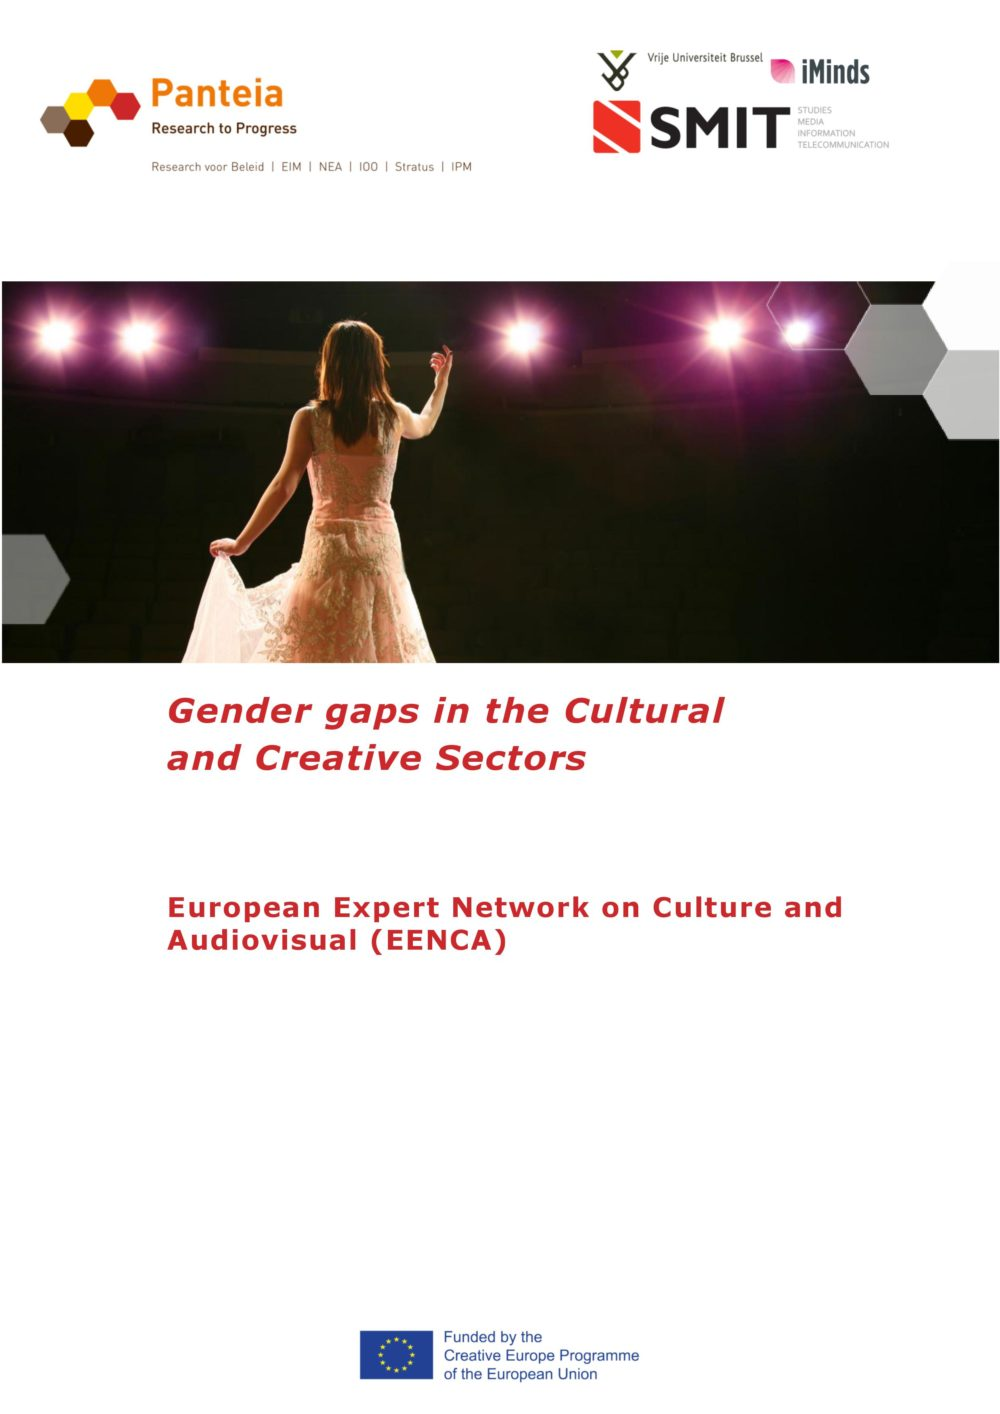 Raport: Gender gaps in the Cultural and Creative Sectors